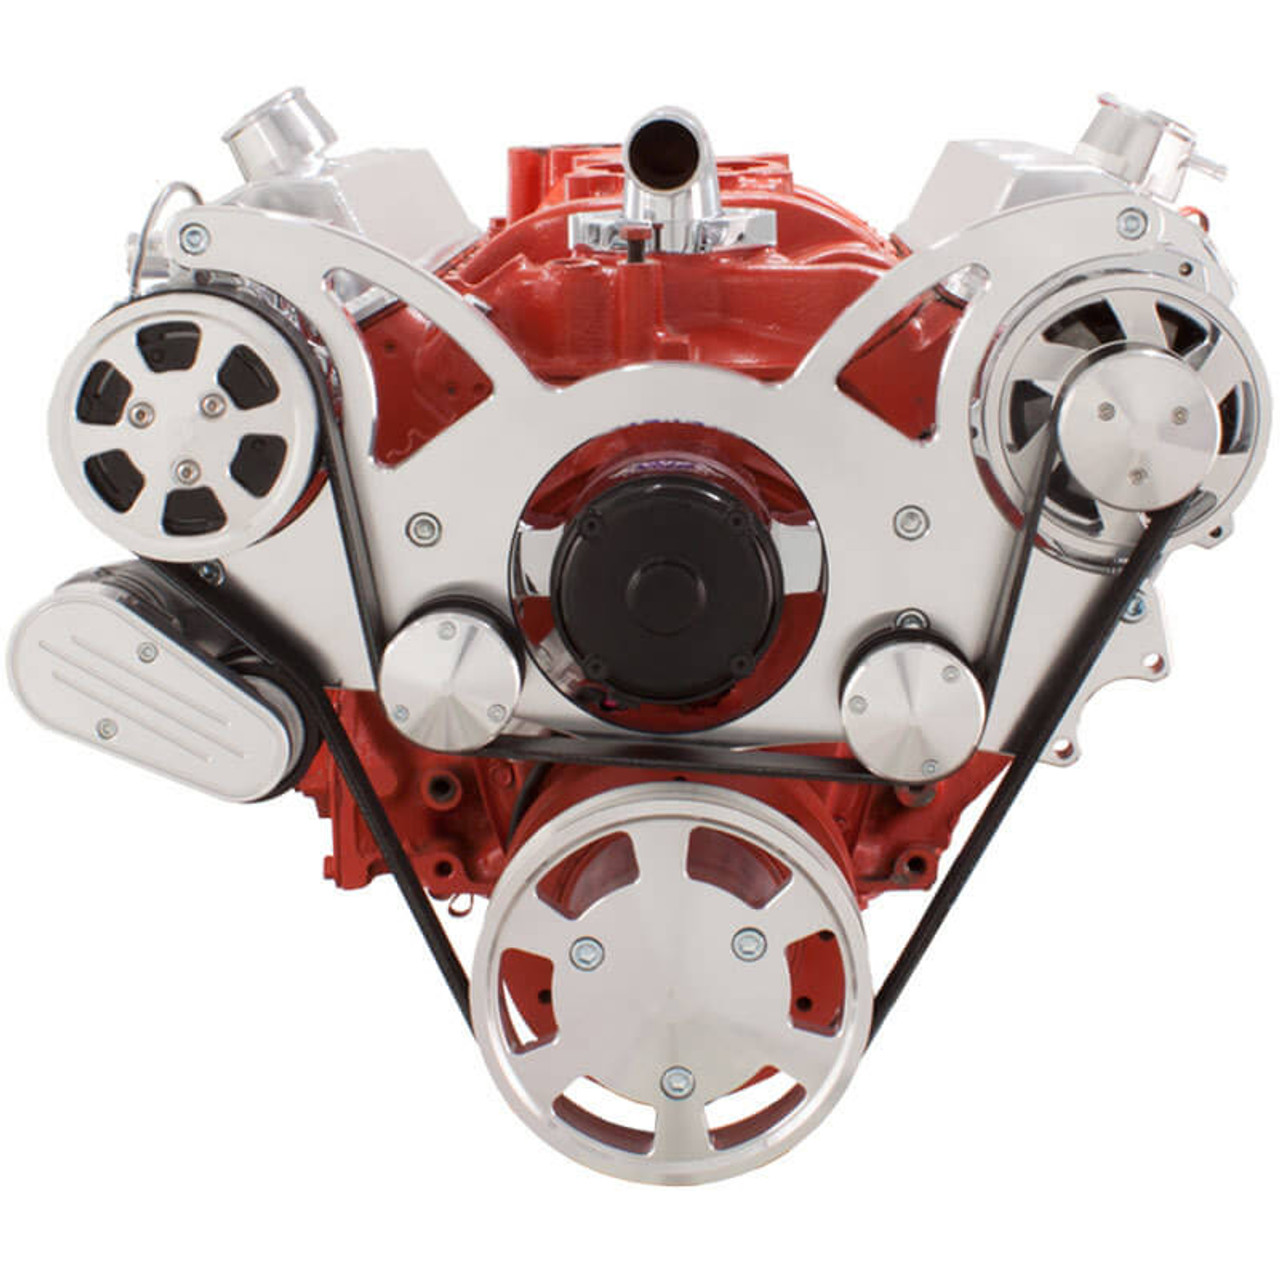 hight resolution of  serpentine conversion kit for small block chevy 283 350 400 with ac on 283 externally regulated alternator